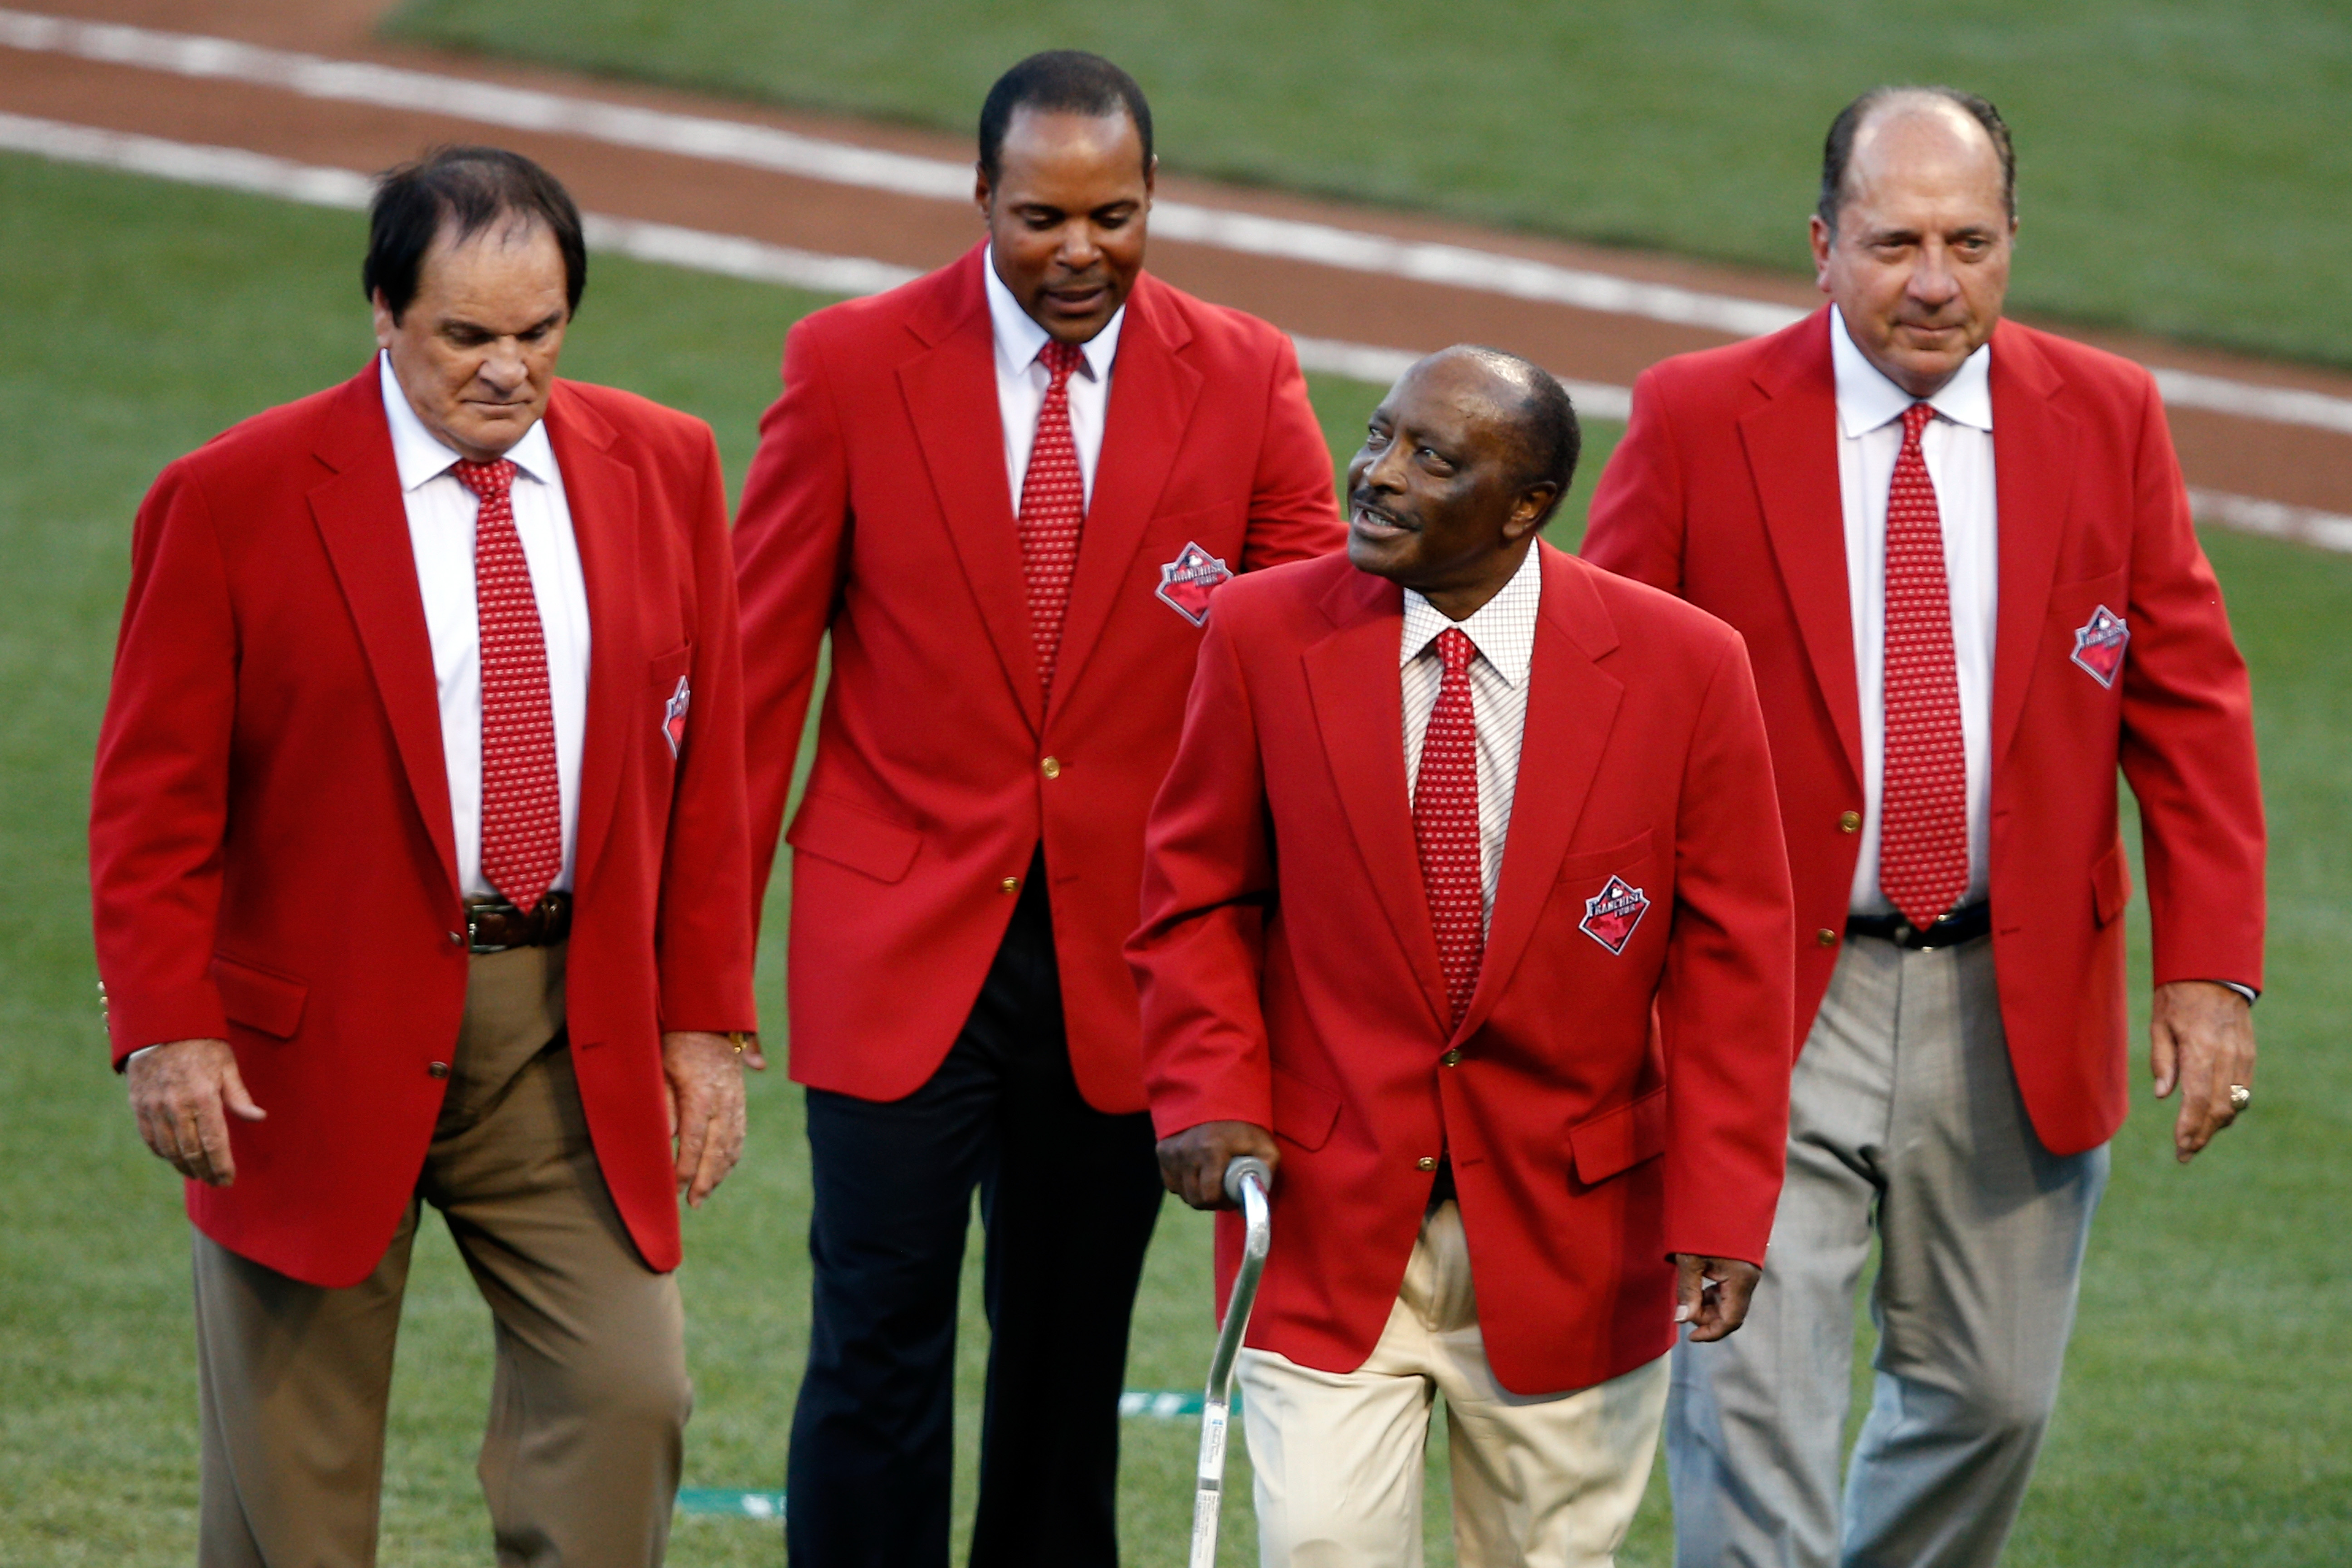 Should steroid users be banned from Hall of Fame?